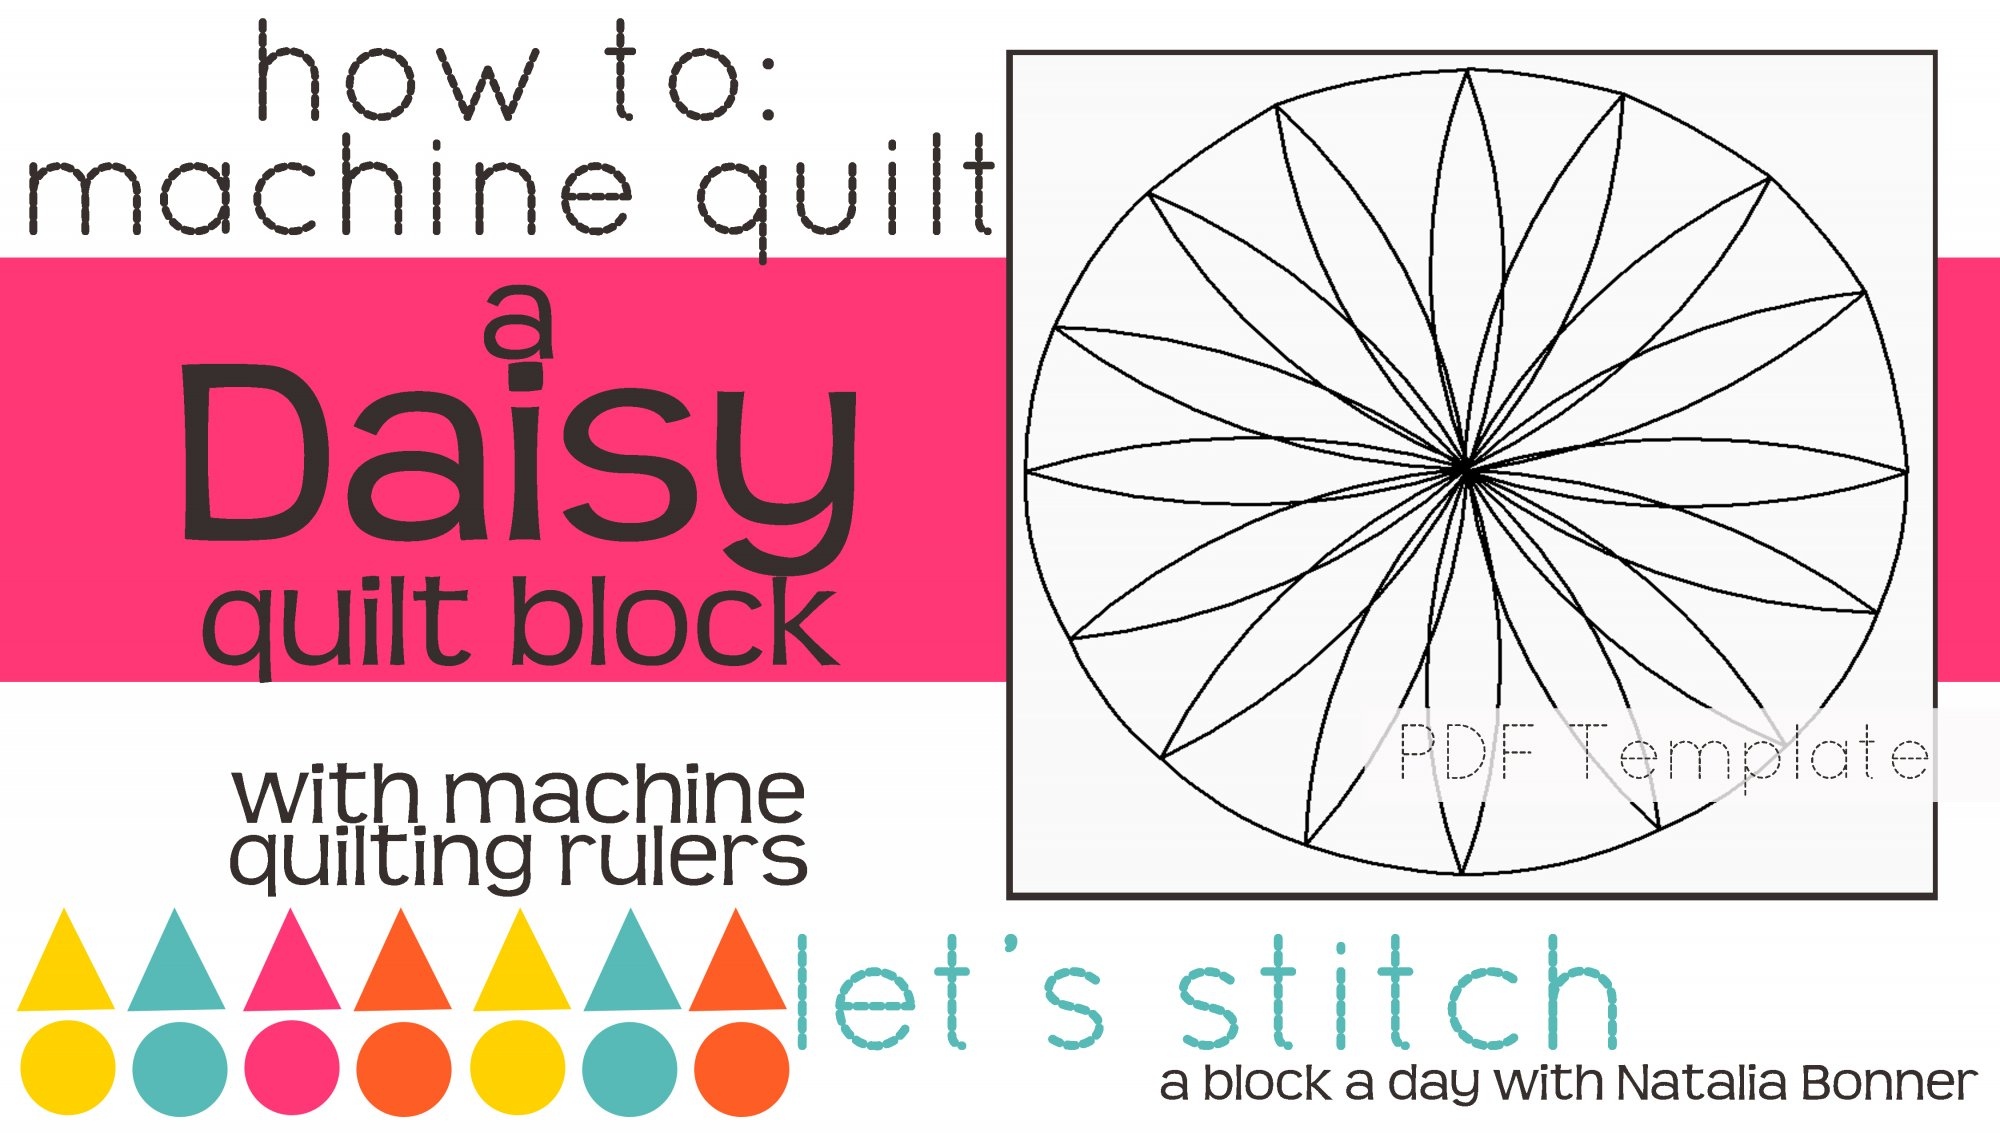 Let's Stitch - A Block a Day With Natalia Bonner - PDF - Daisy